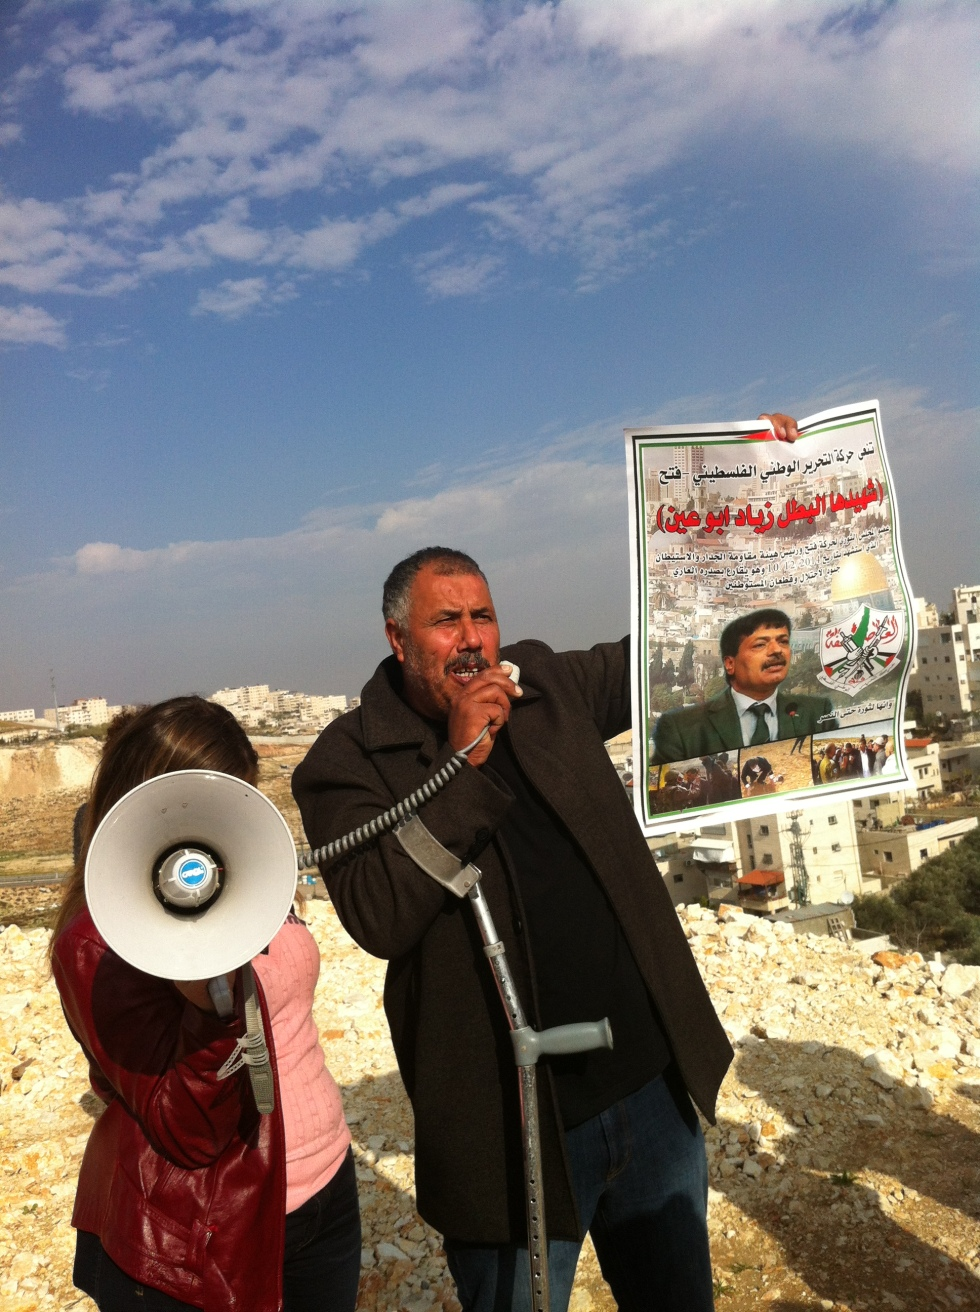 Activist Mohammad Abu Hummus holding up a poster of Ziad Abu Ein. Issawiya, East Jerusalem